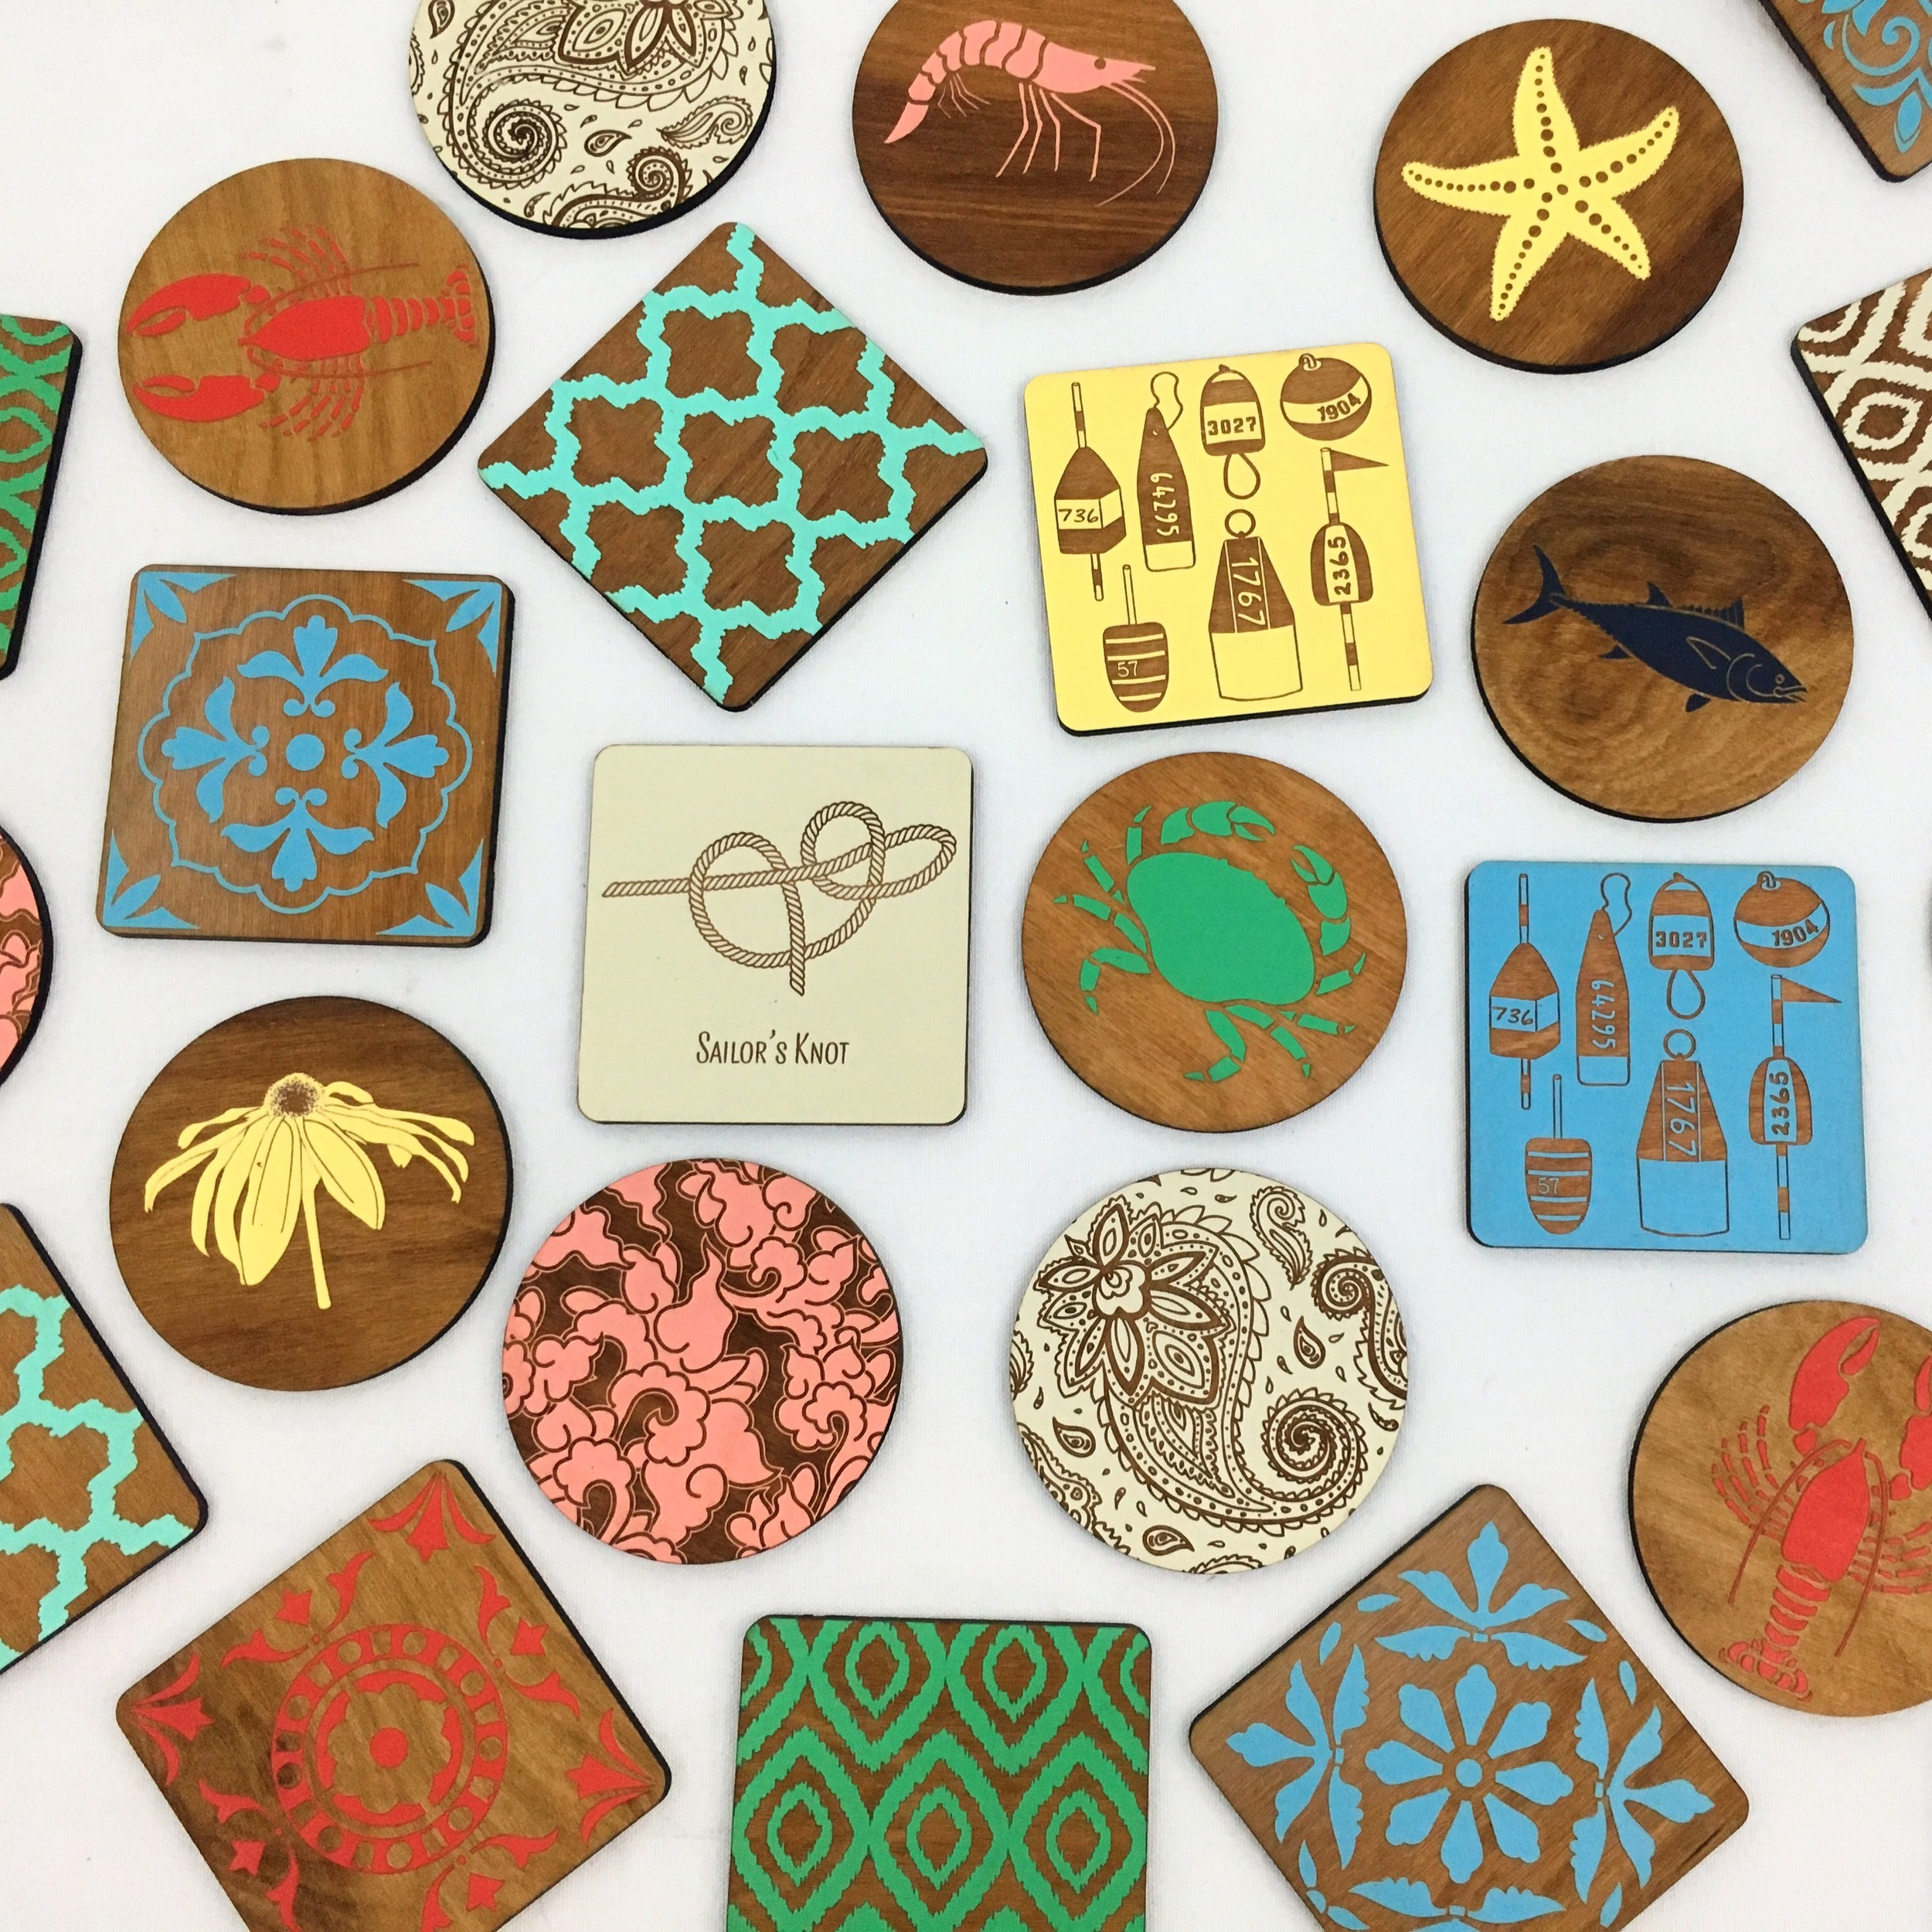 Benoit's Design Co. Coasters (1).JPG